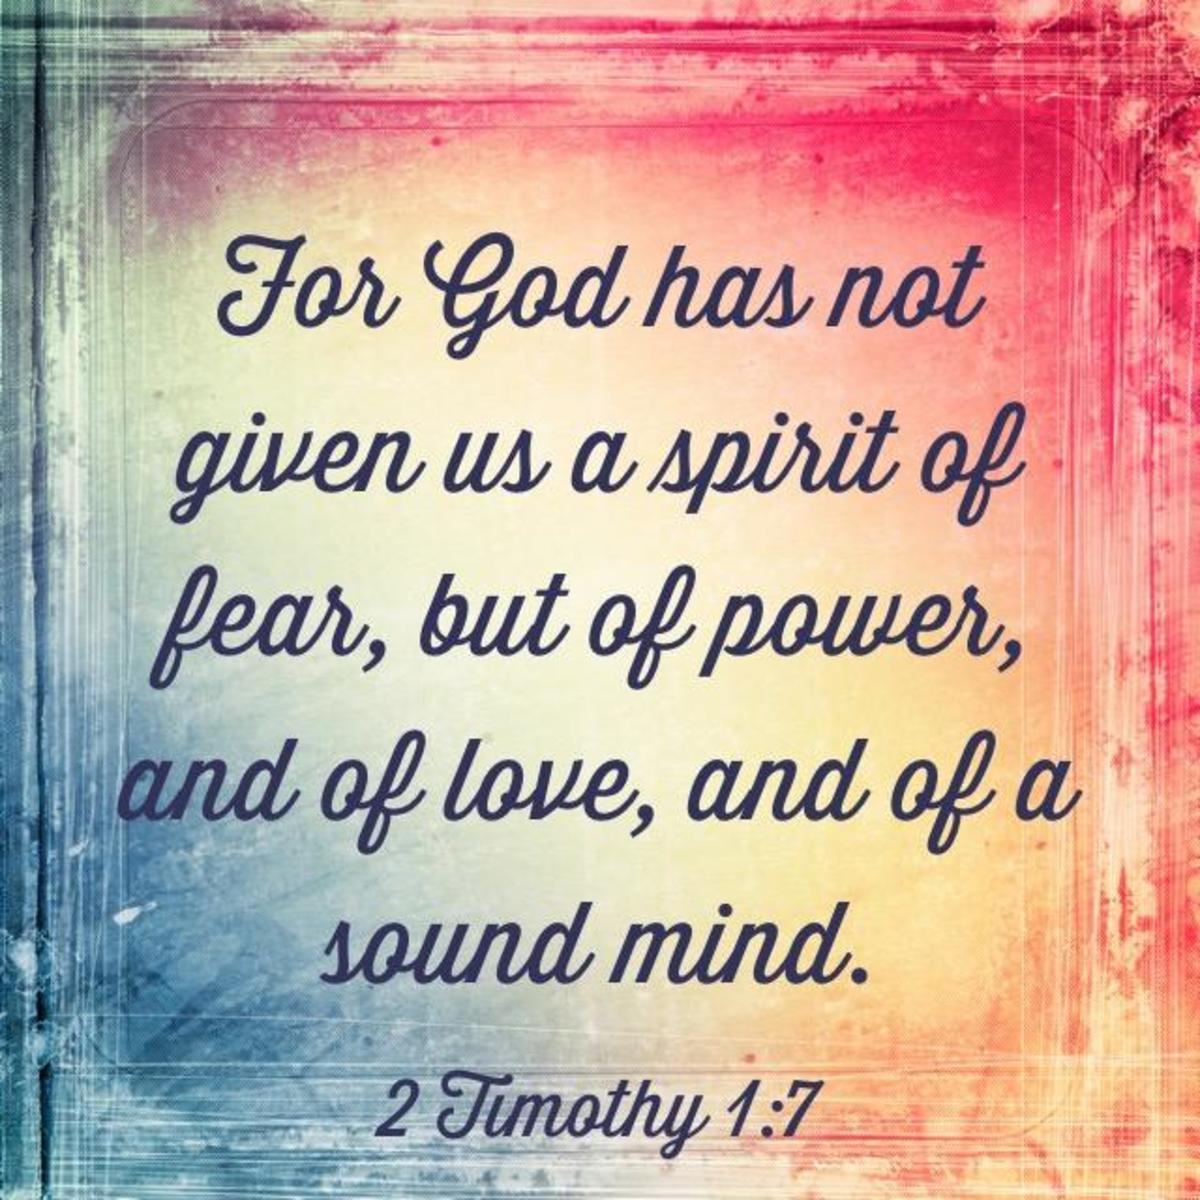 three-things-god-gave-us-instead-of-a-spirit-of-fear